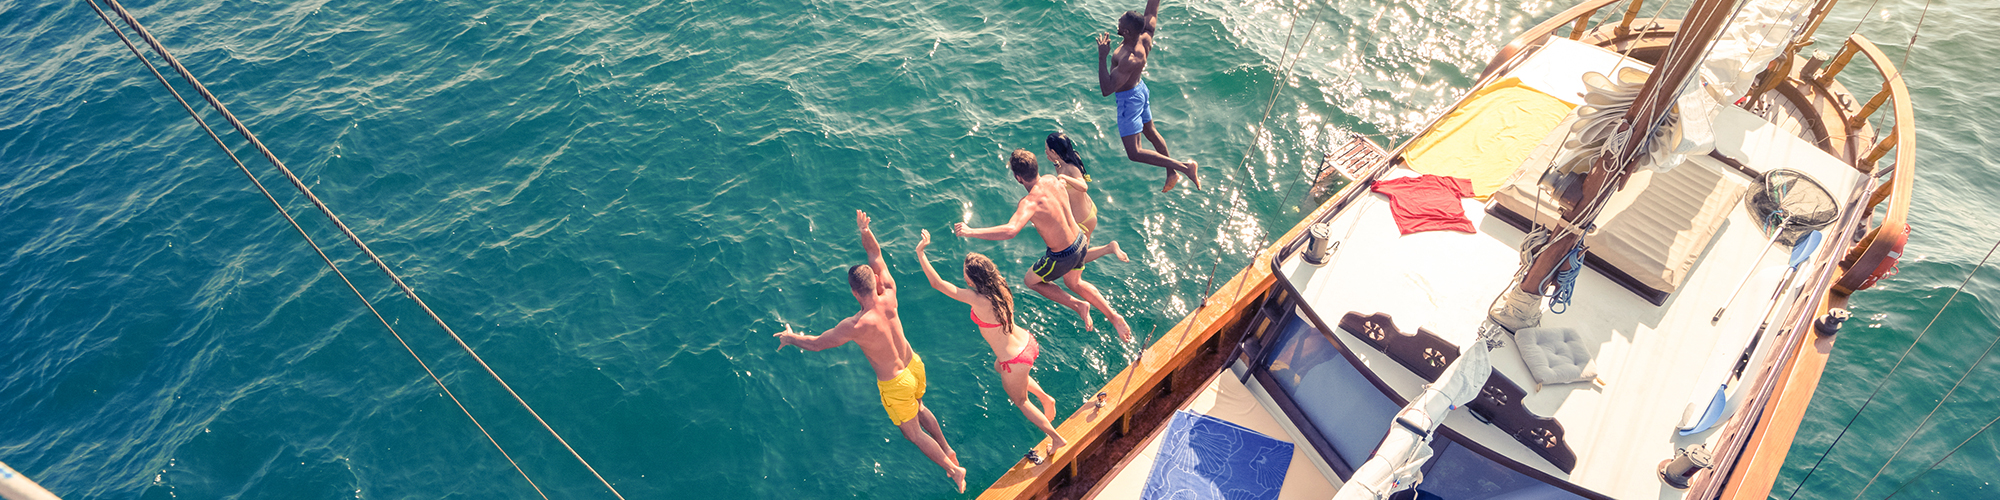 Friends jumping off a boat